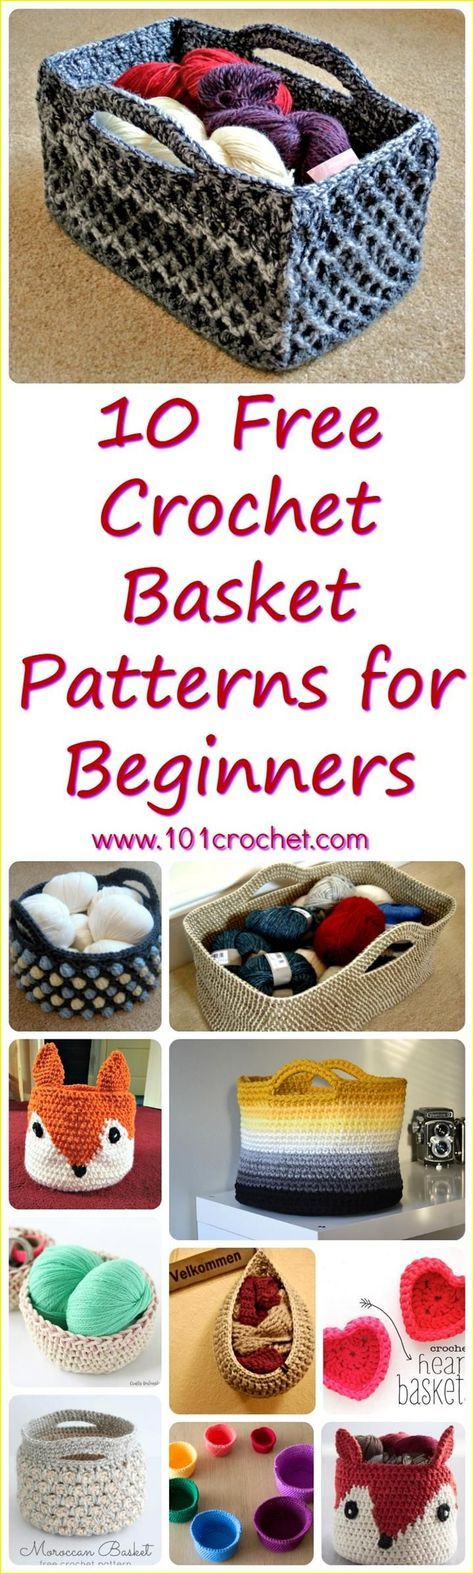 10 Free Crochet Basket Patterns for Beginners | Keep your home tidy with these great free patterns!